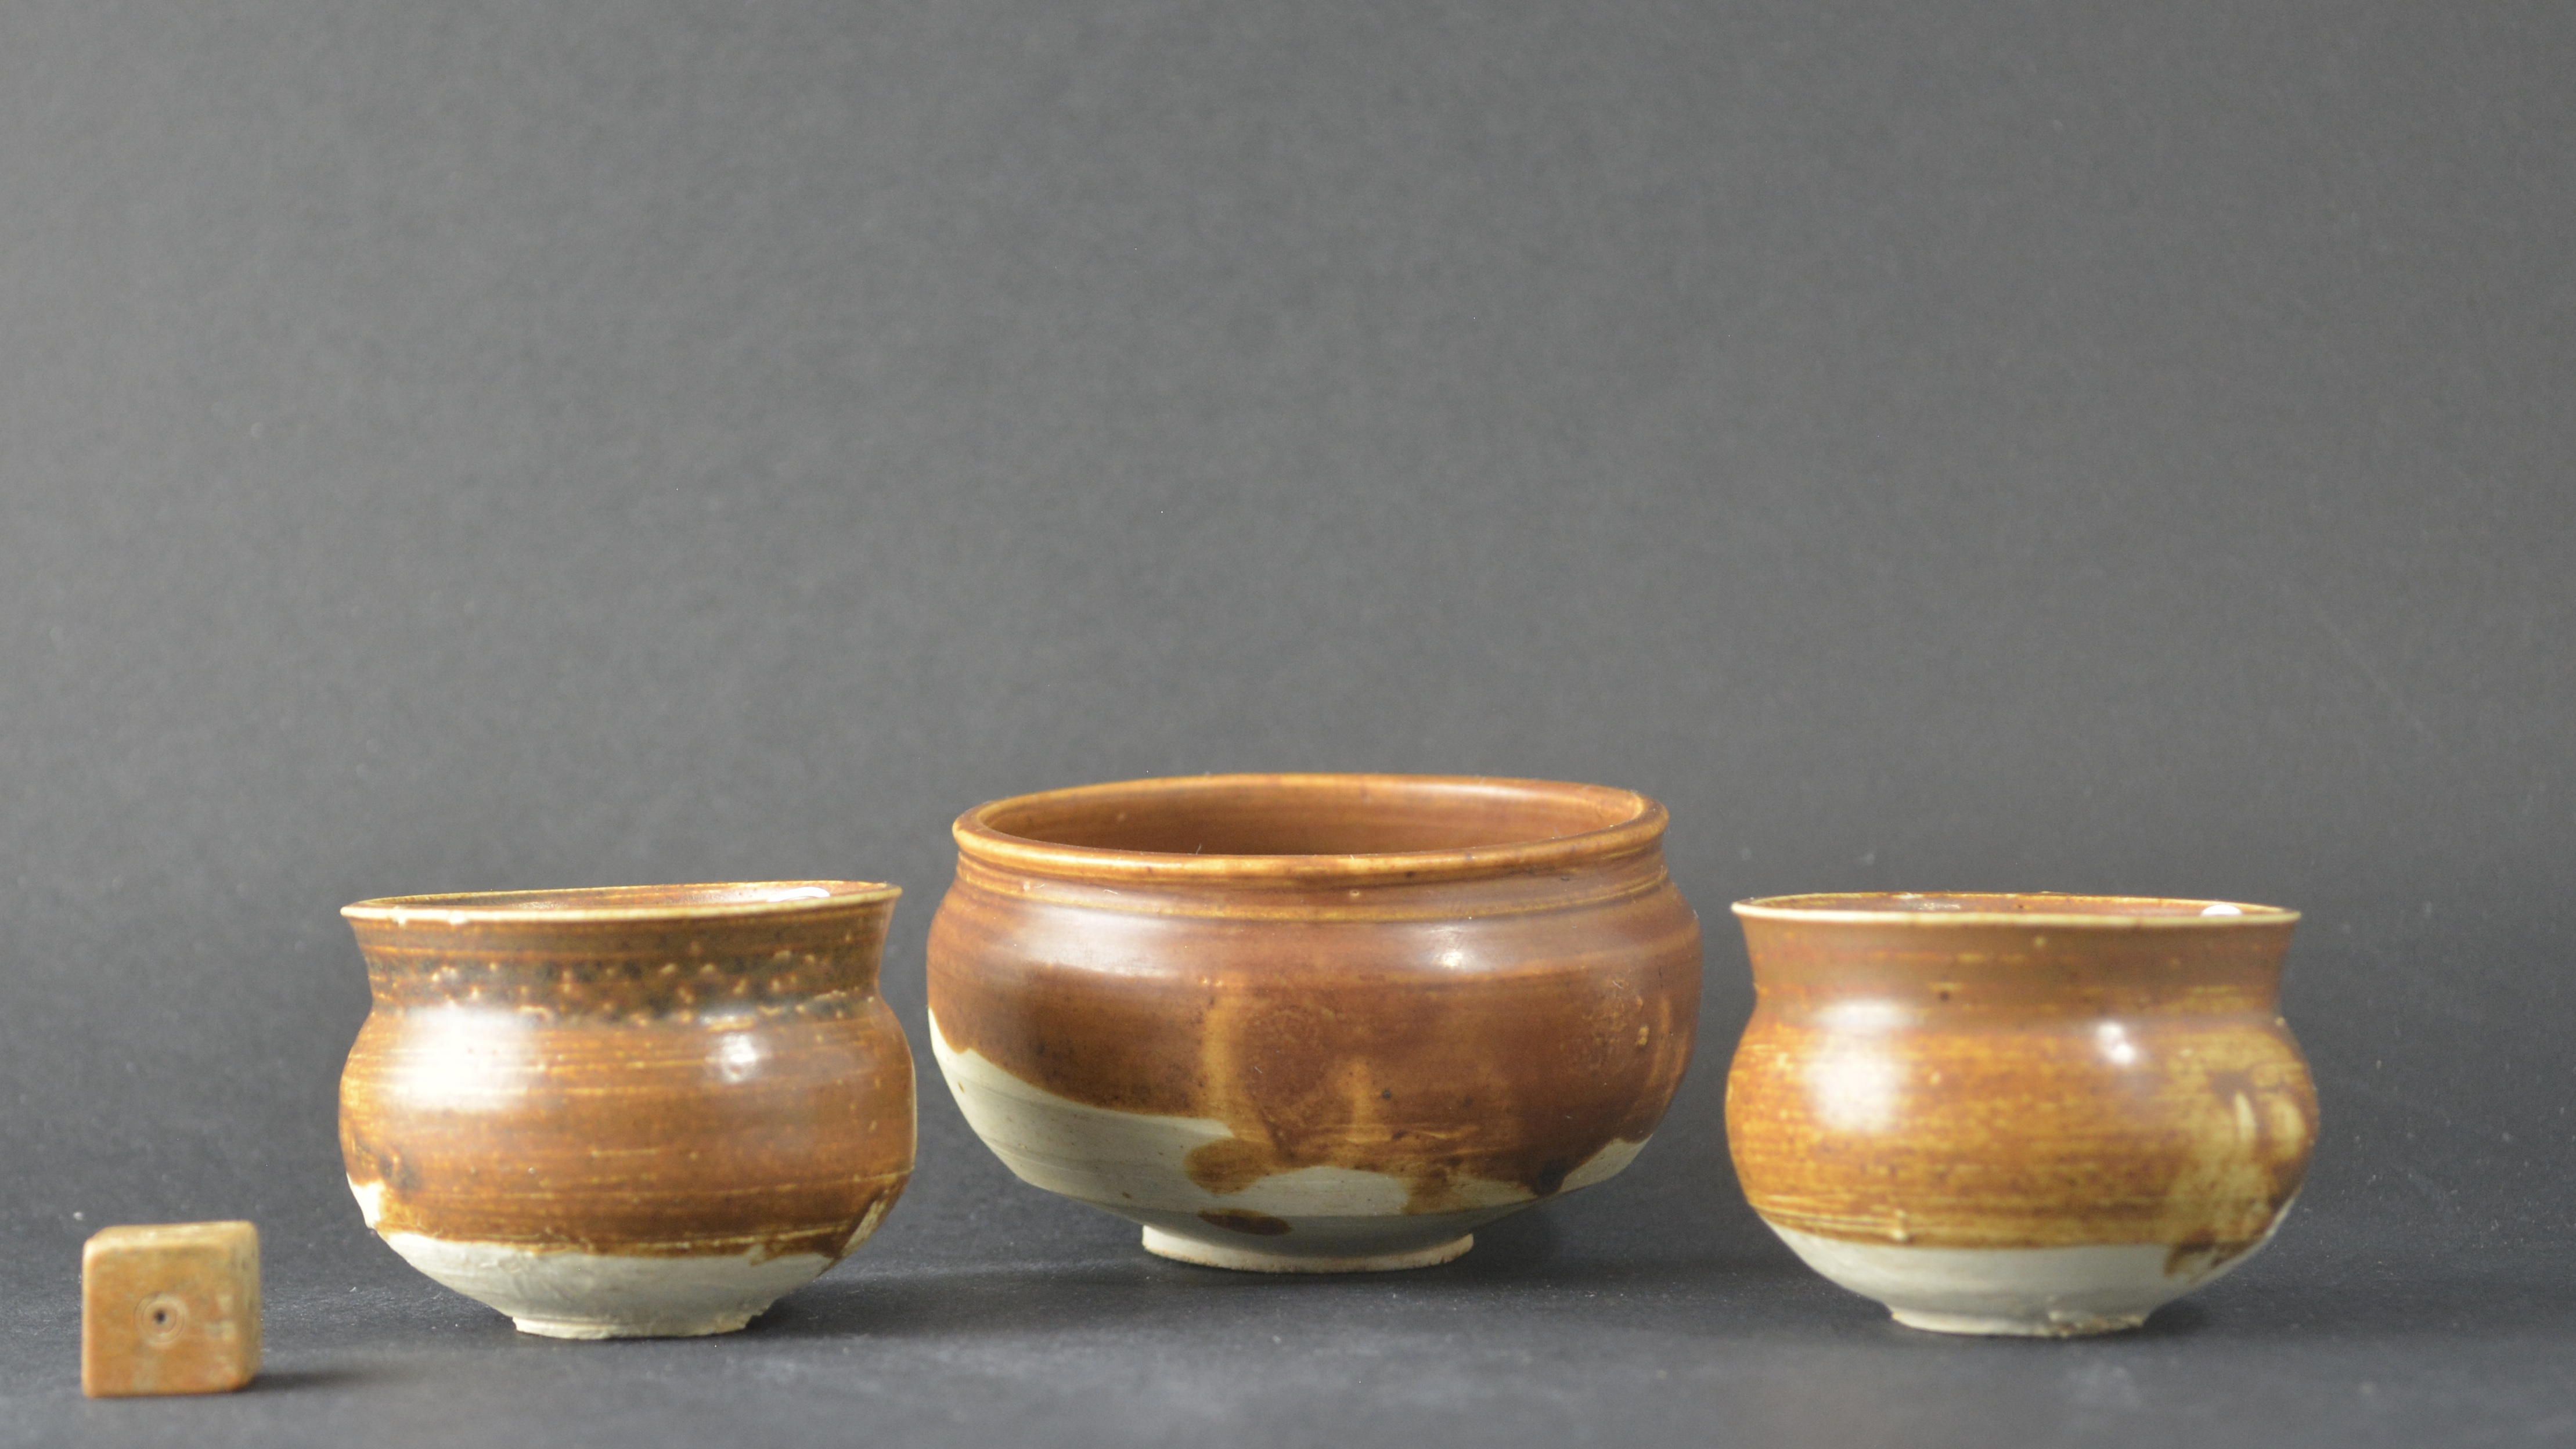 A Group of Song or Jin Russet Glazed Jars from the same Private Collection.